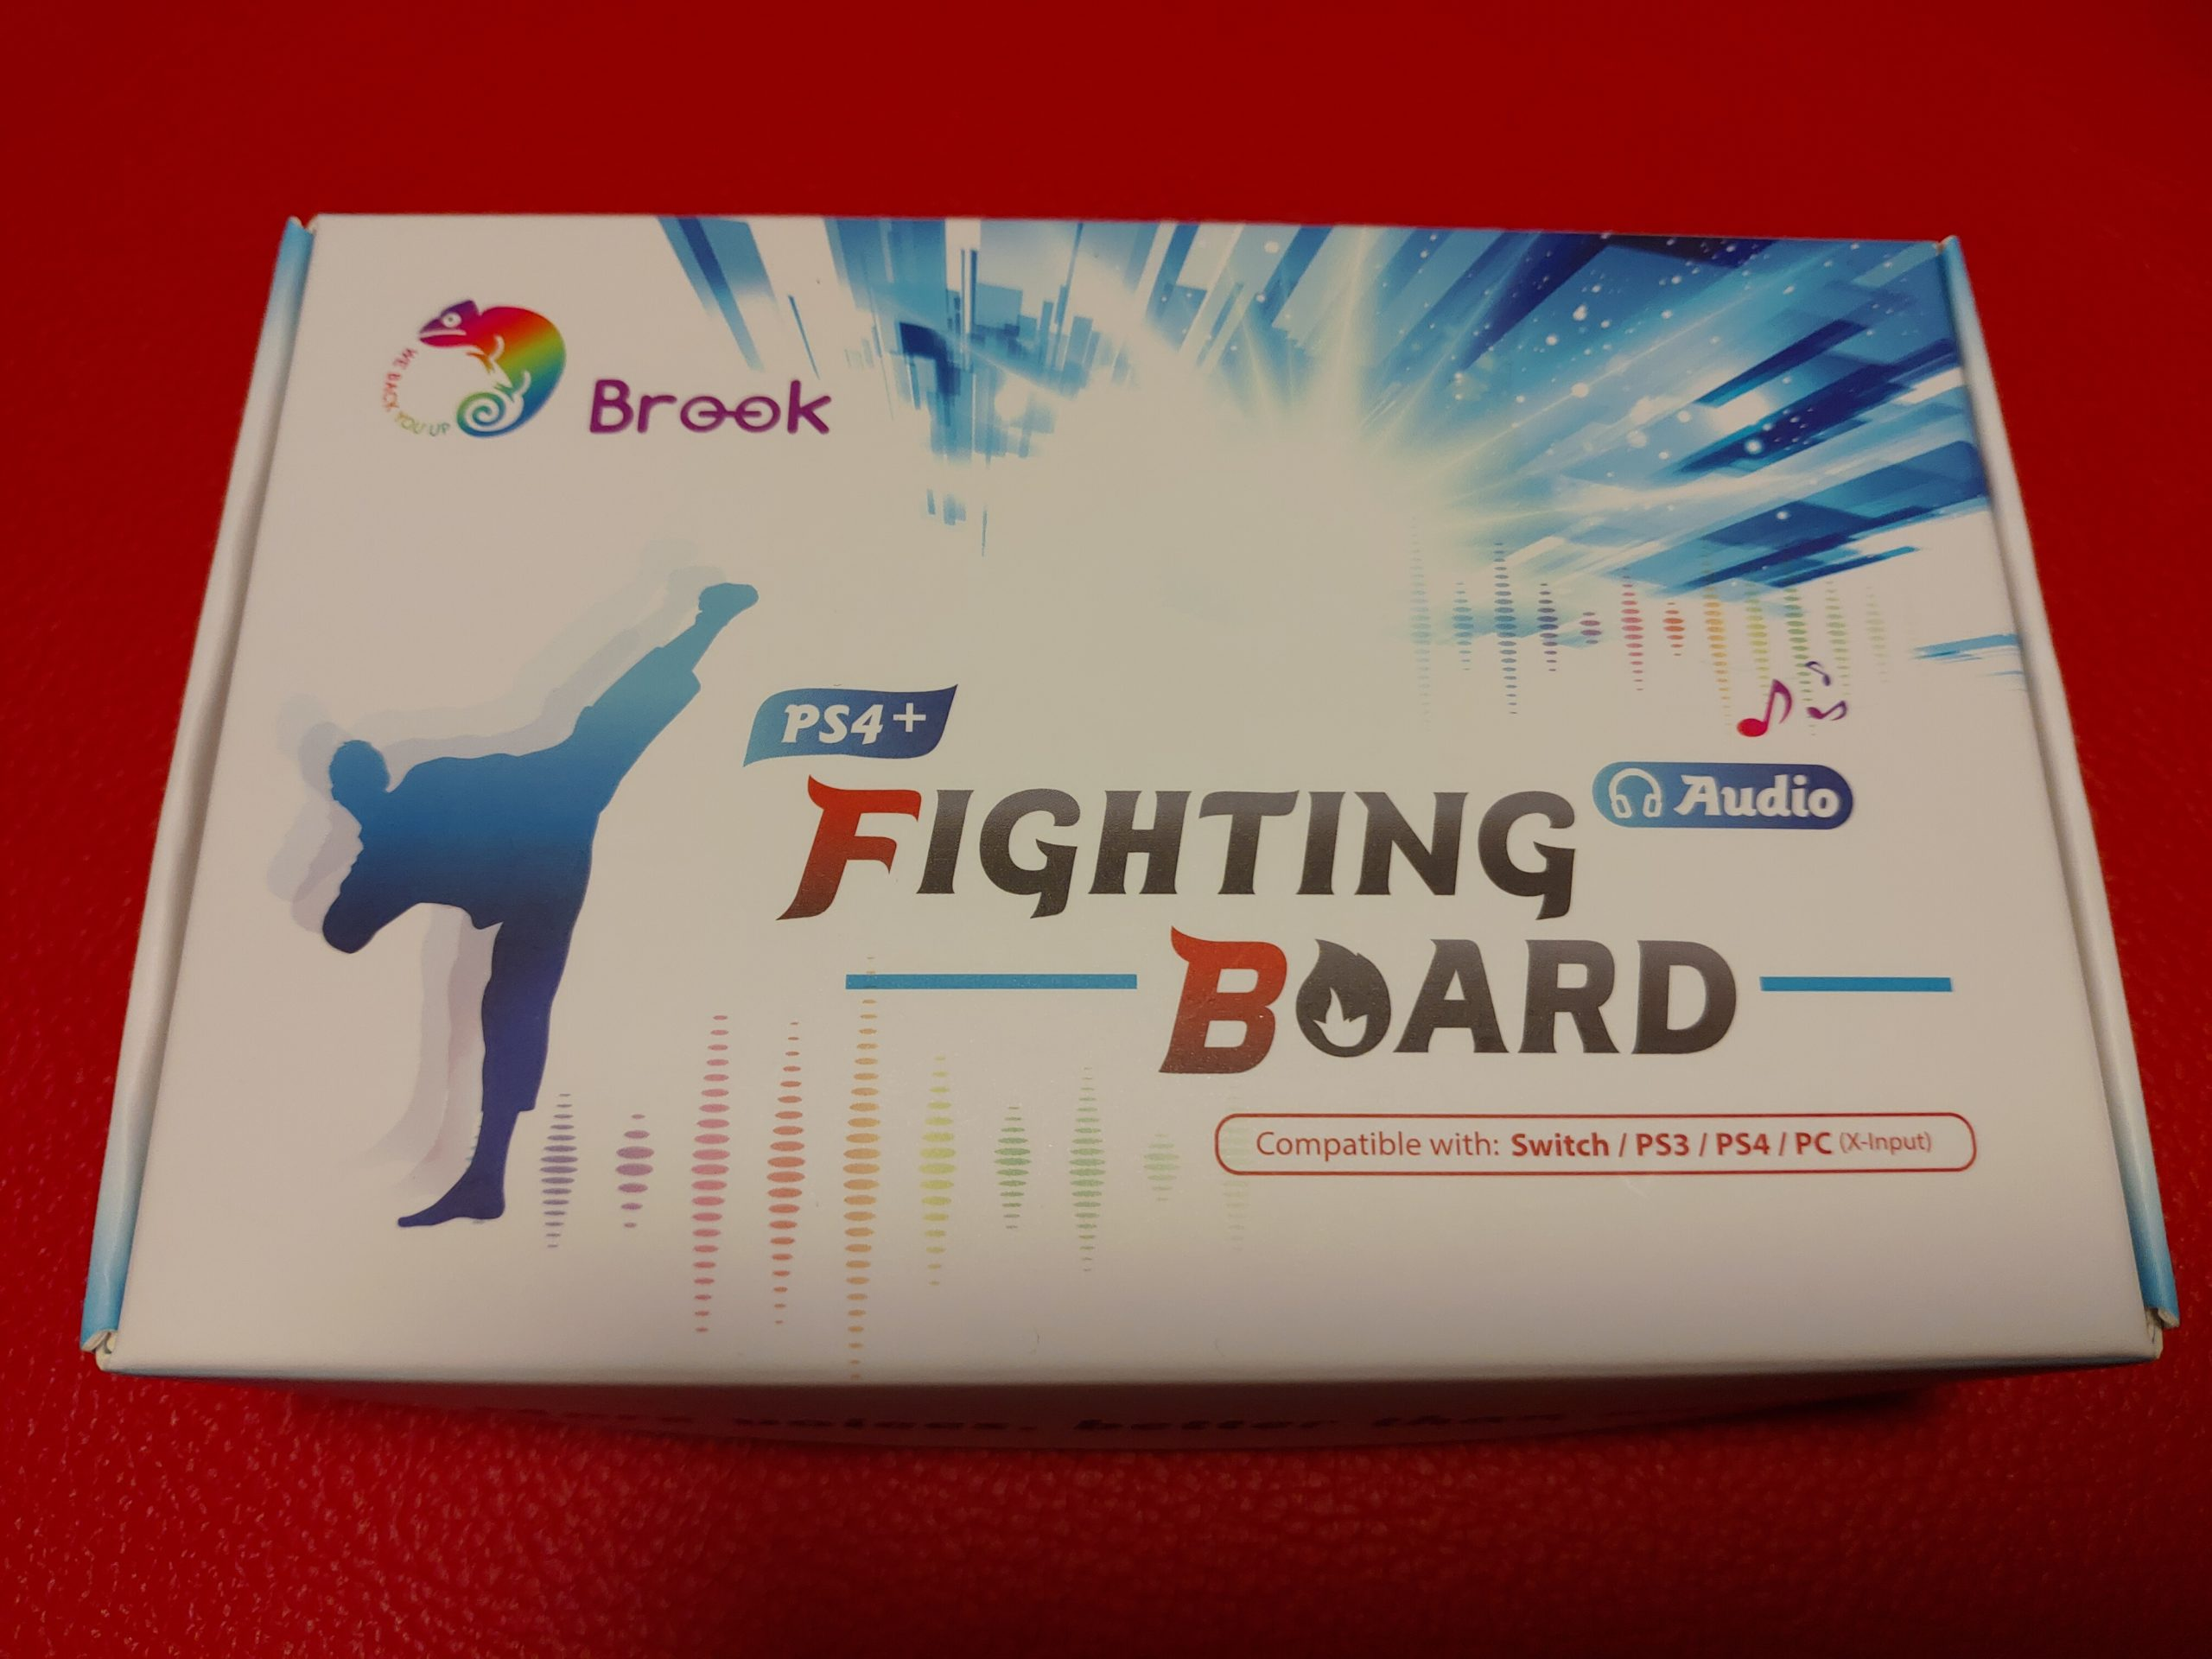 Brook PS4+ AUDIO FIGHTING BOARD レビュー